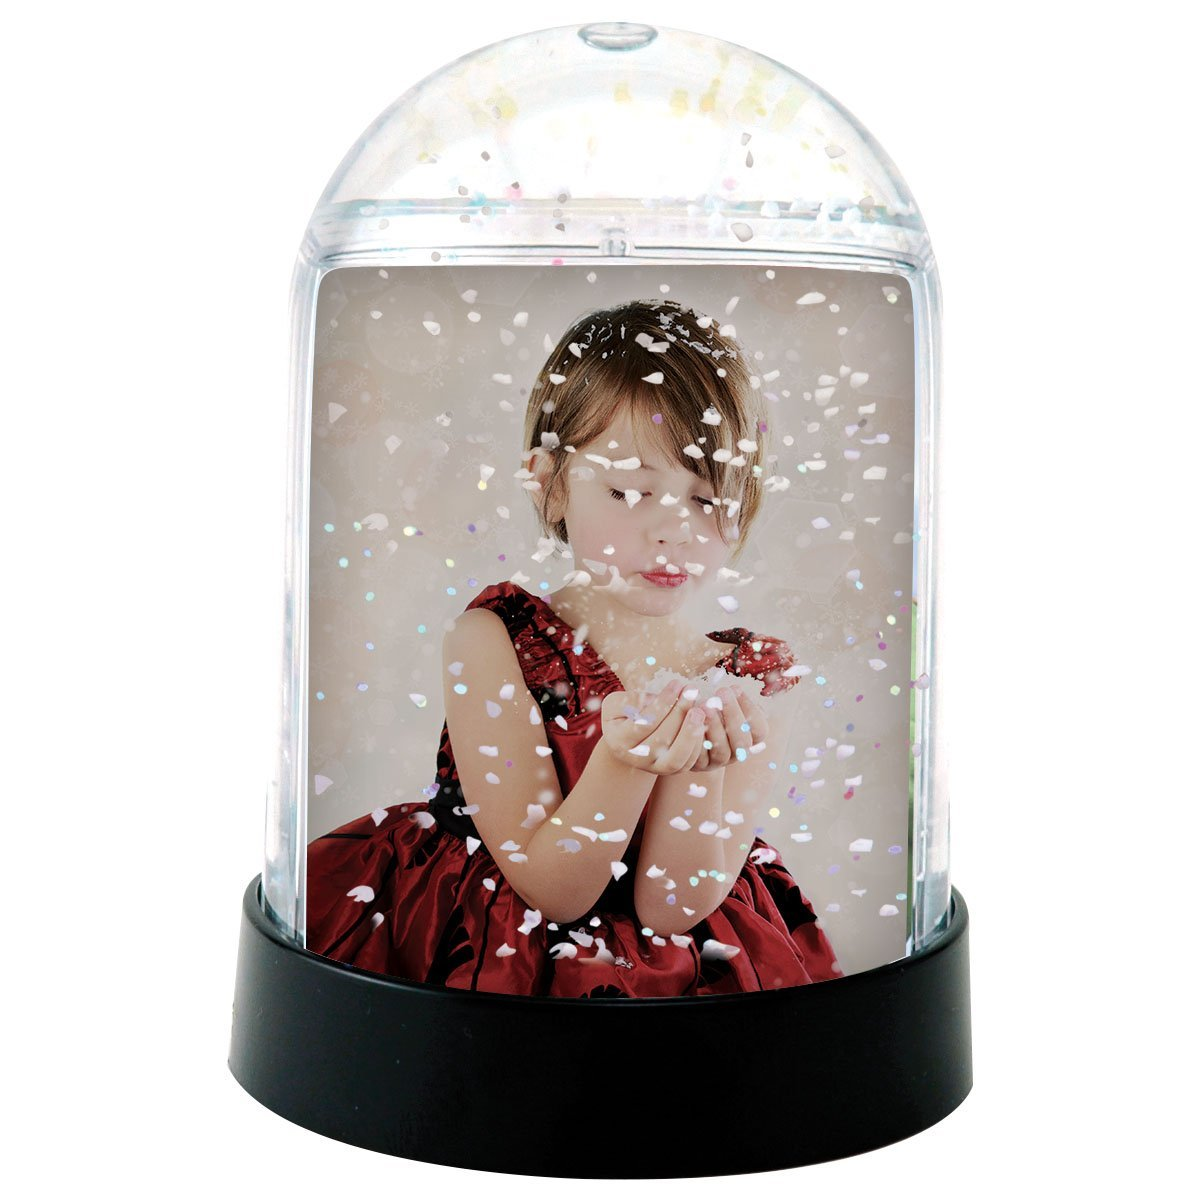 2'' x 2-7/8'' Clear Vertical Photo Snow Globes (holds two photos) - Case of 36 by Neil Enterprises